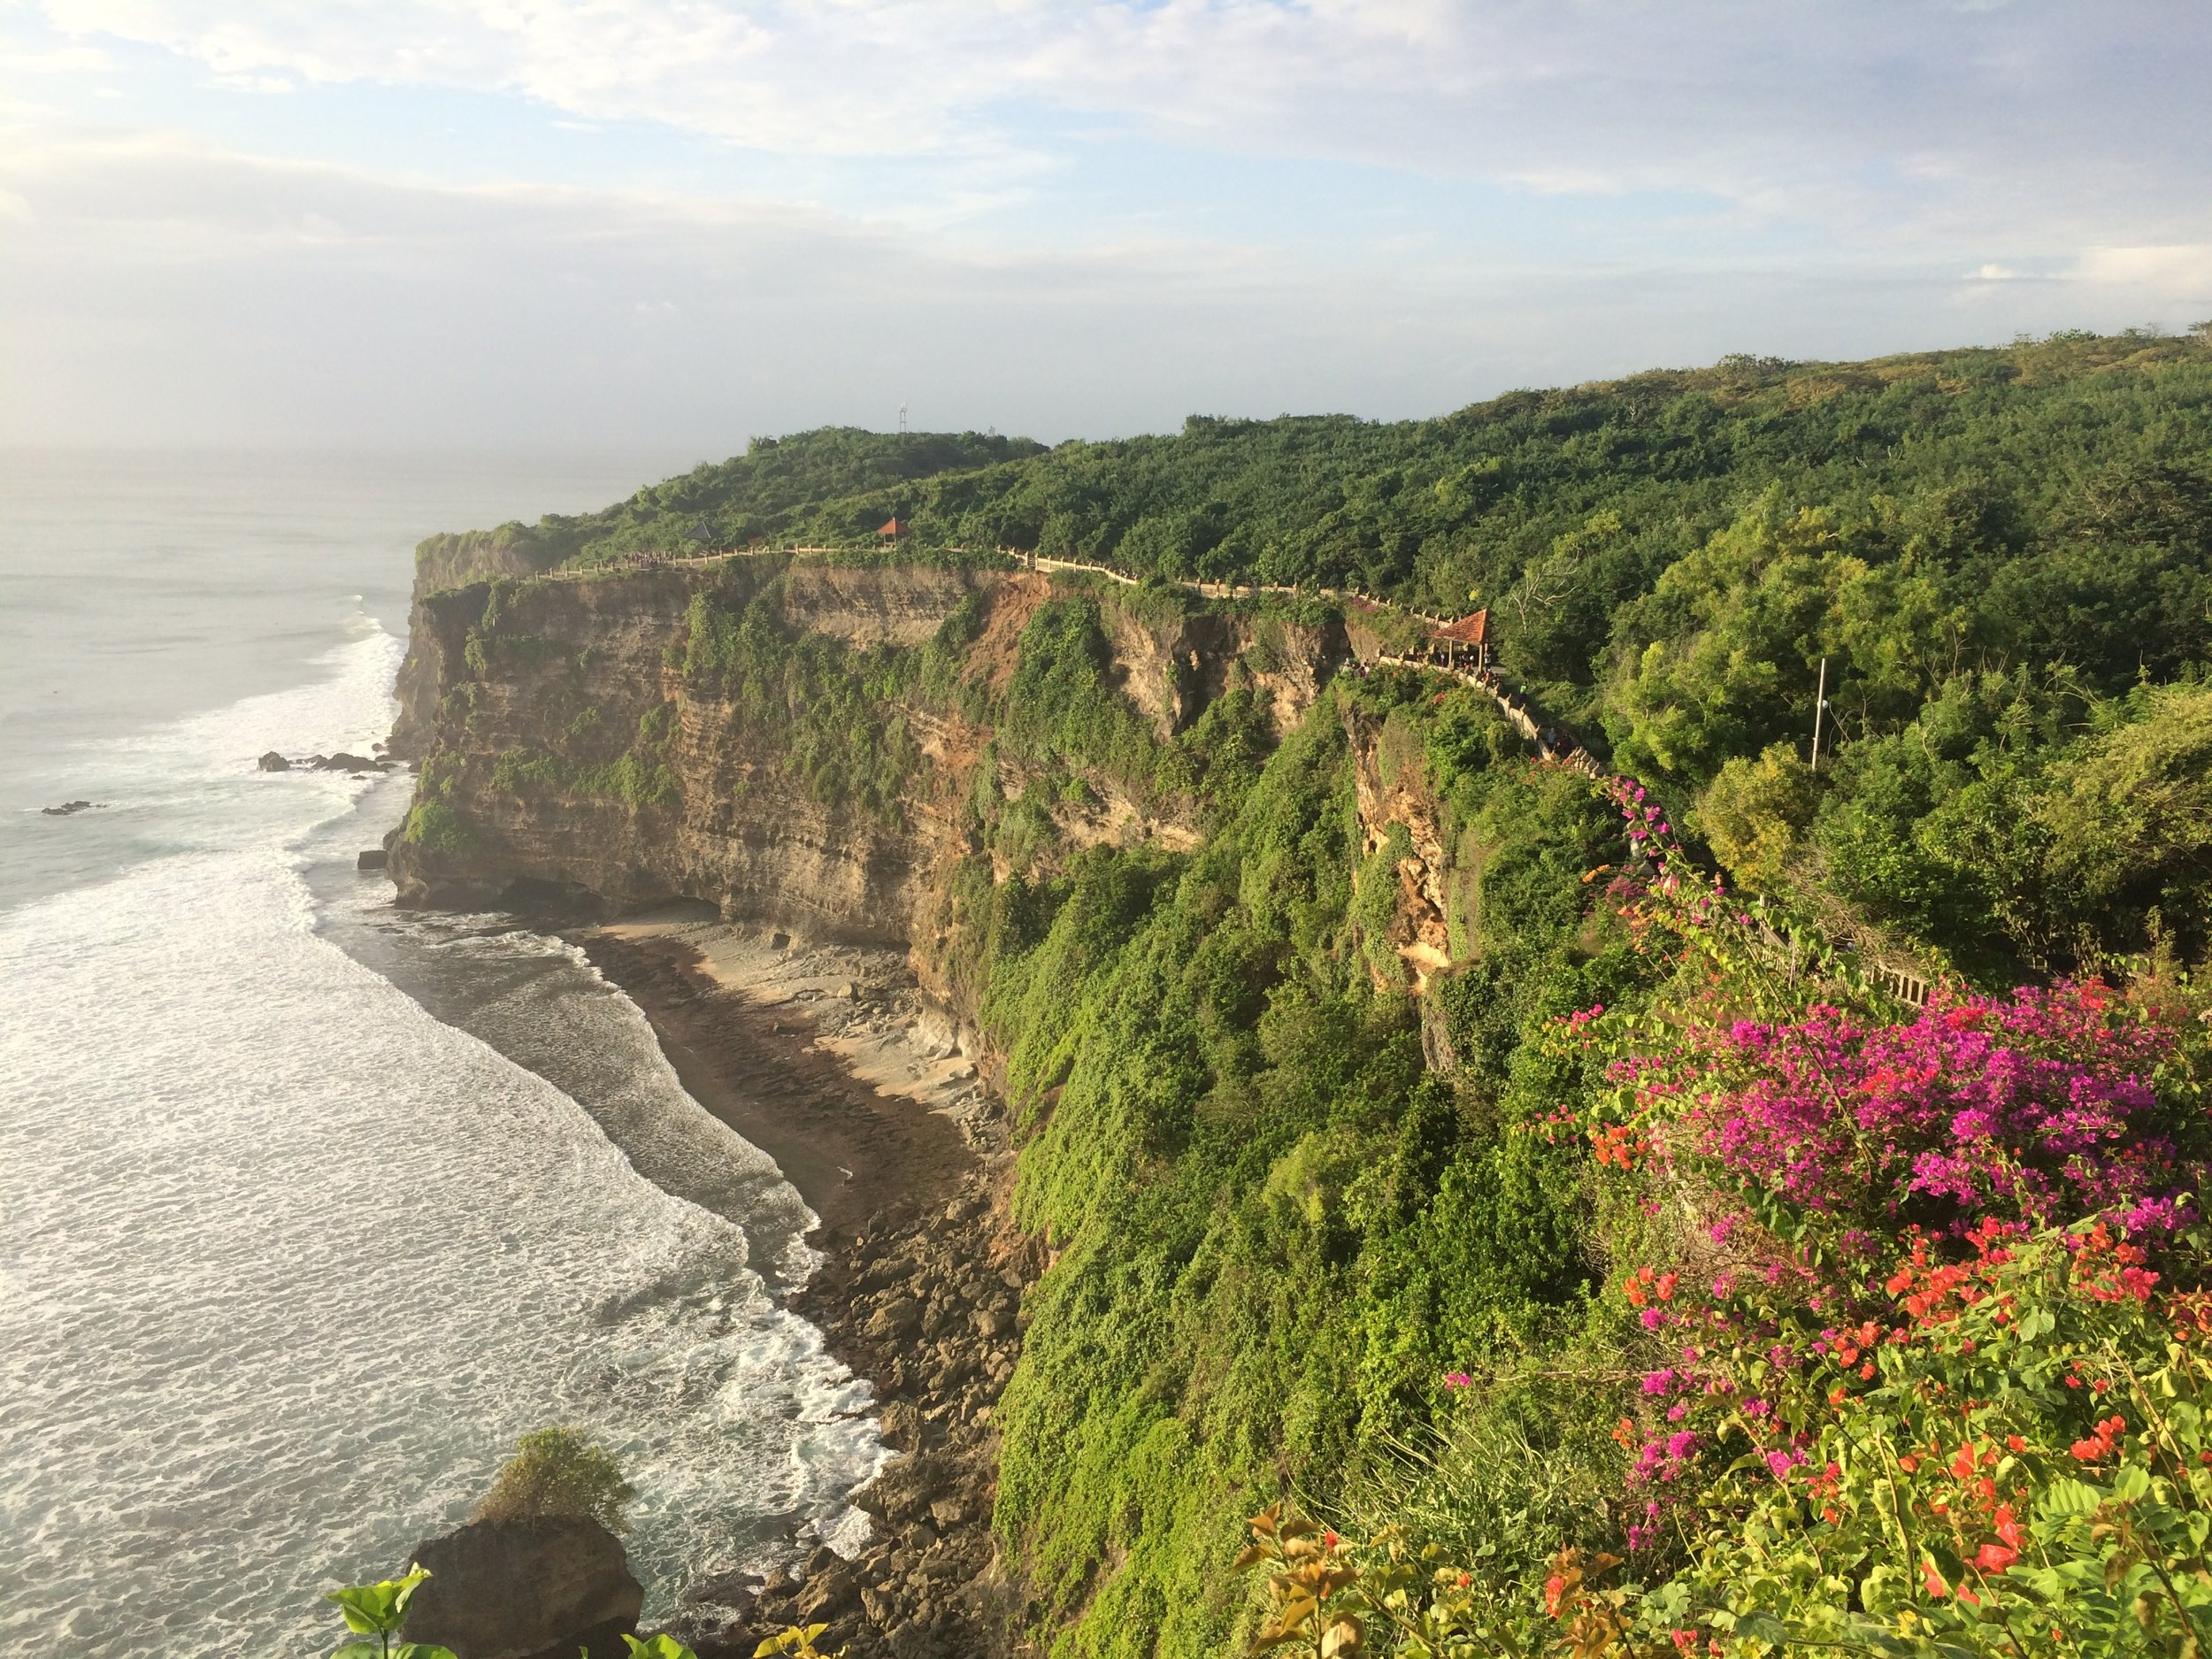 Incredible cliffside views at Uluwatu Temple.